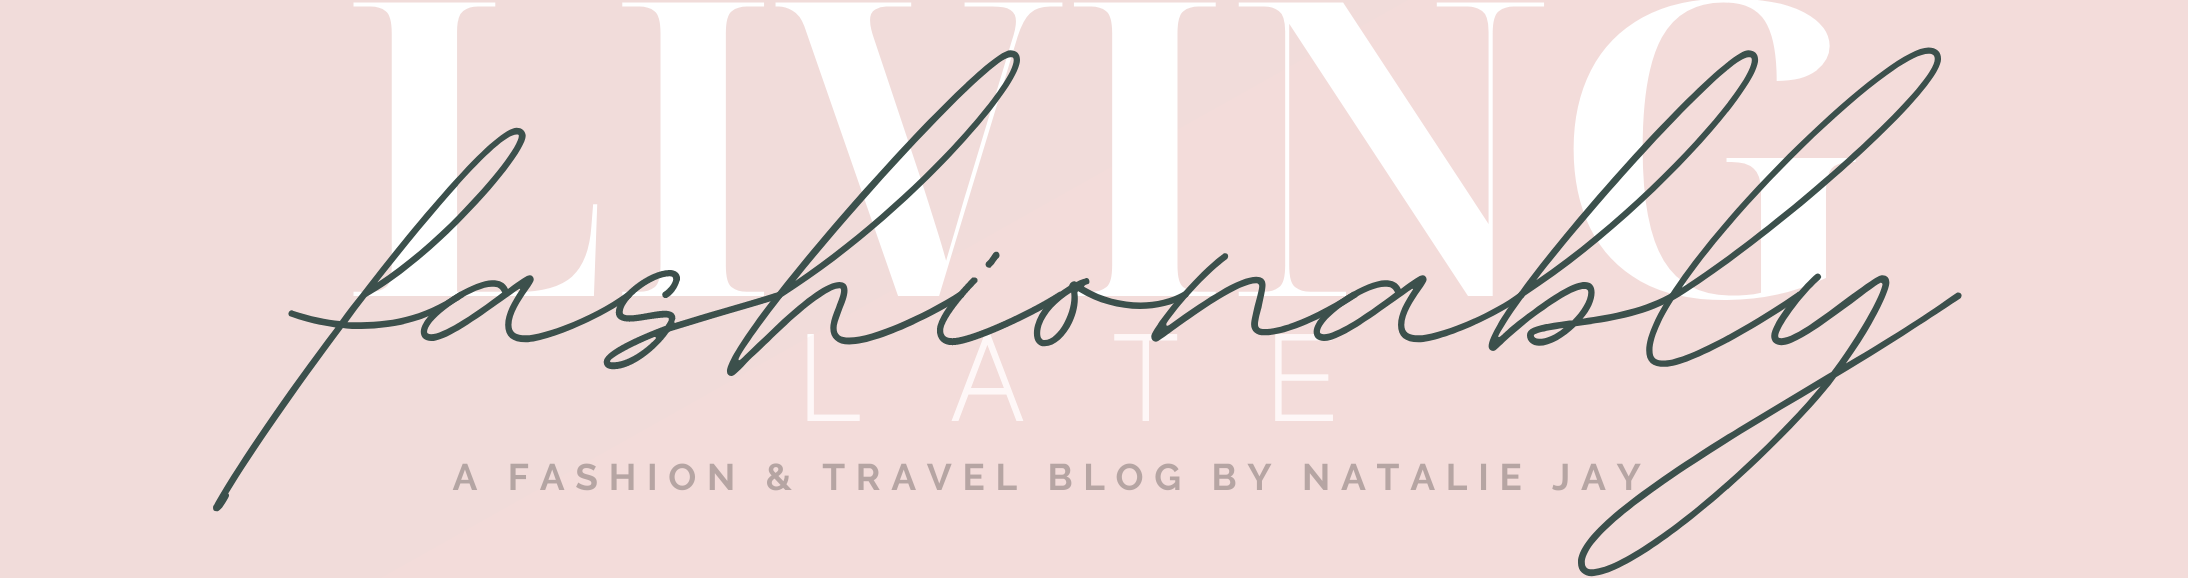 Living Fashionably Late – A Fashion Blog by Natalie Jay